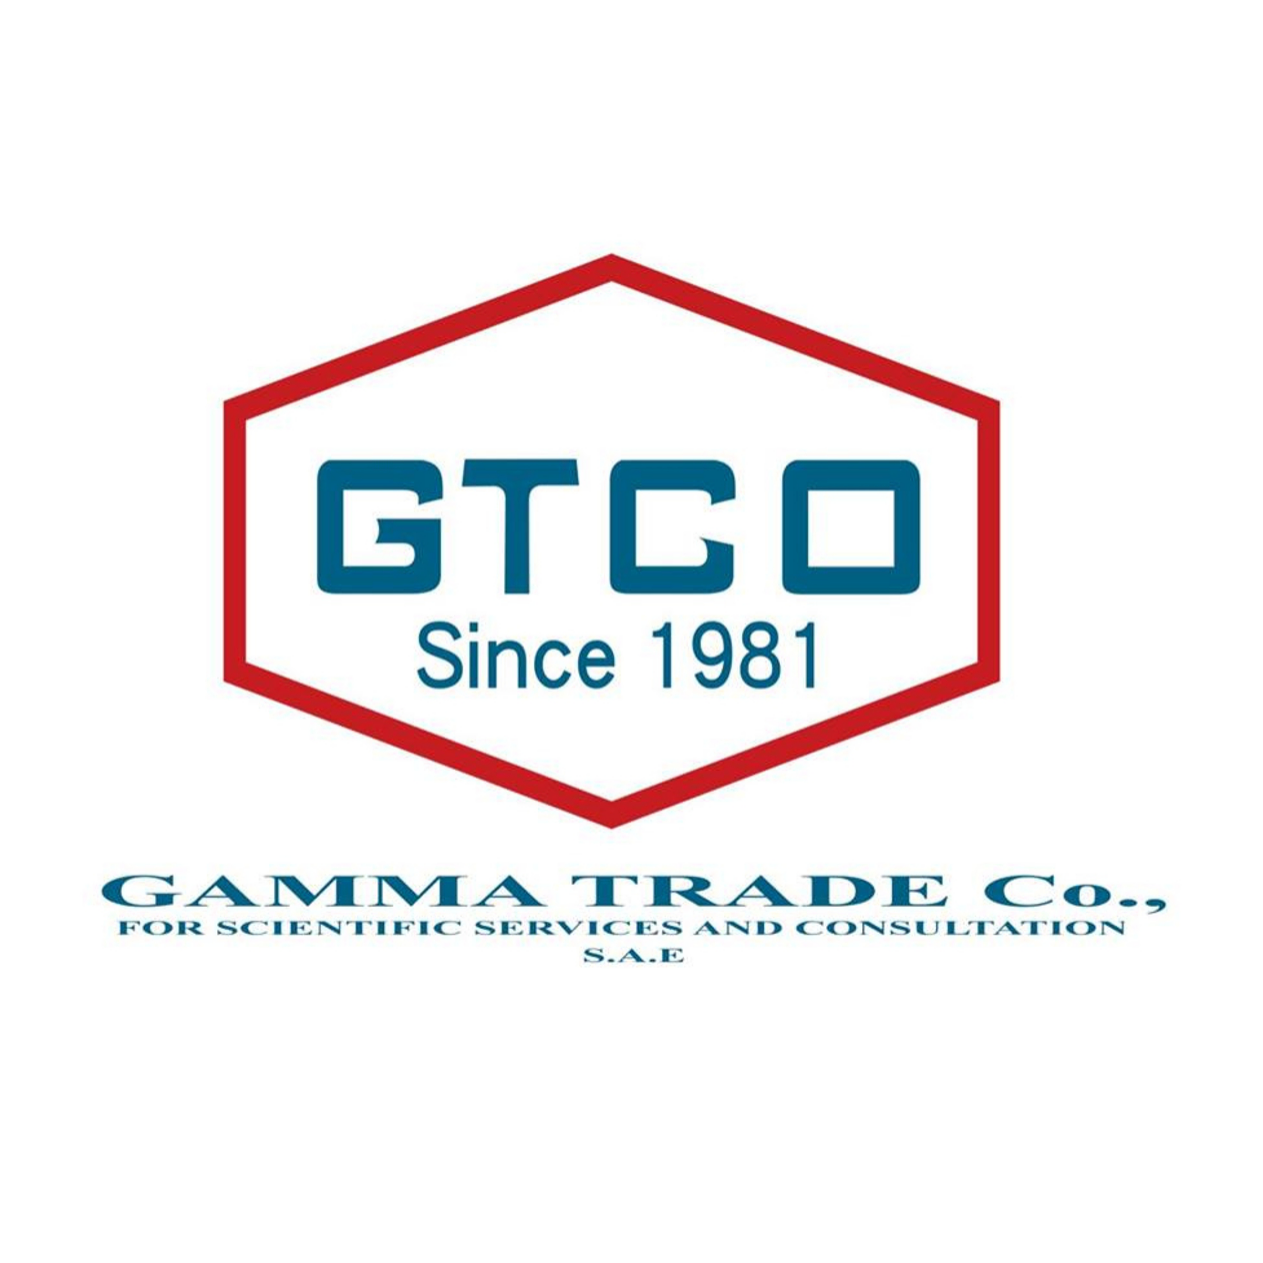 Gamma Trade co for scientific services & consultation